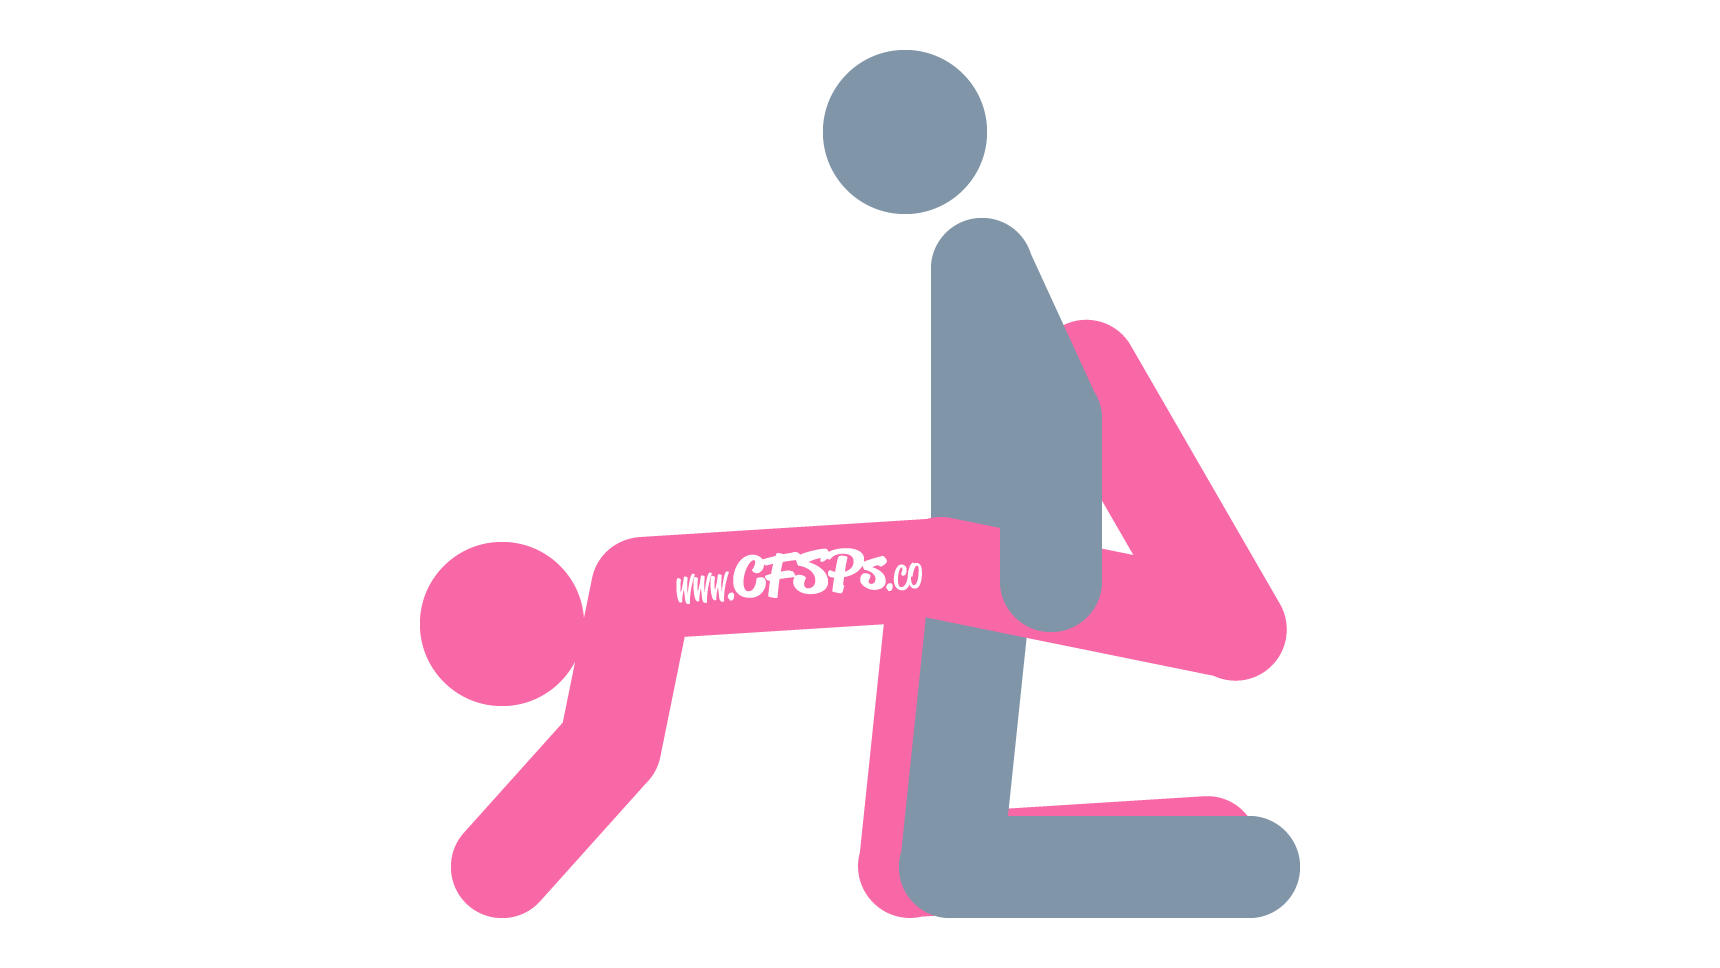 An illustration of the Ice Sculpture Sex Position. This sex picture demonstrates how Ice Sculpture is a kneeling, rear-entry sex position that creates a tight fit during sex. It's basically doggy style with a tight fit.